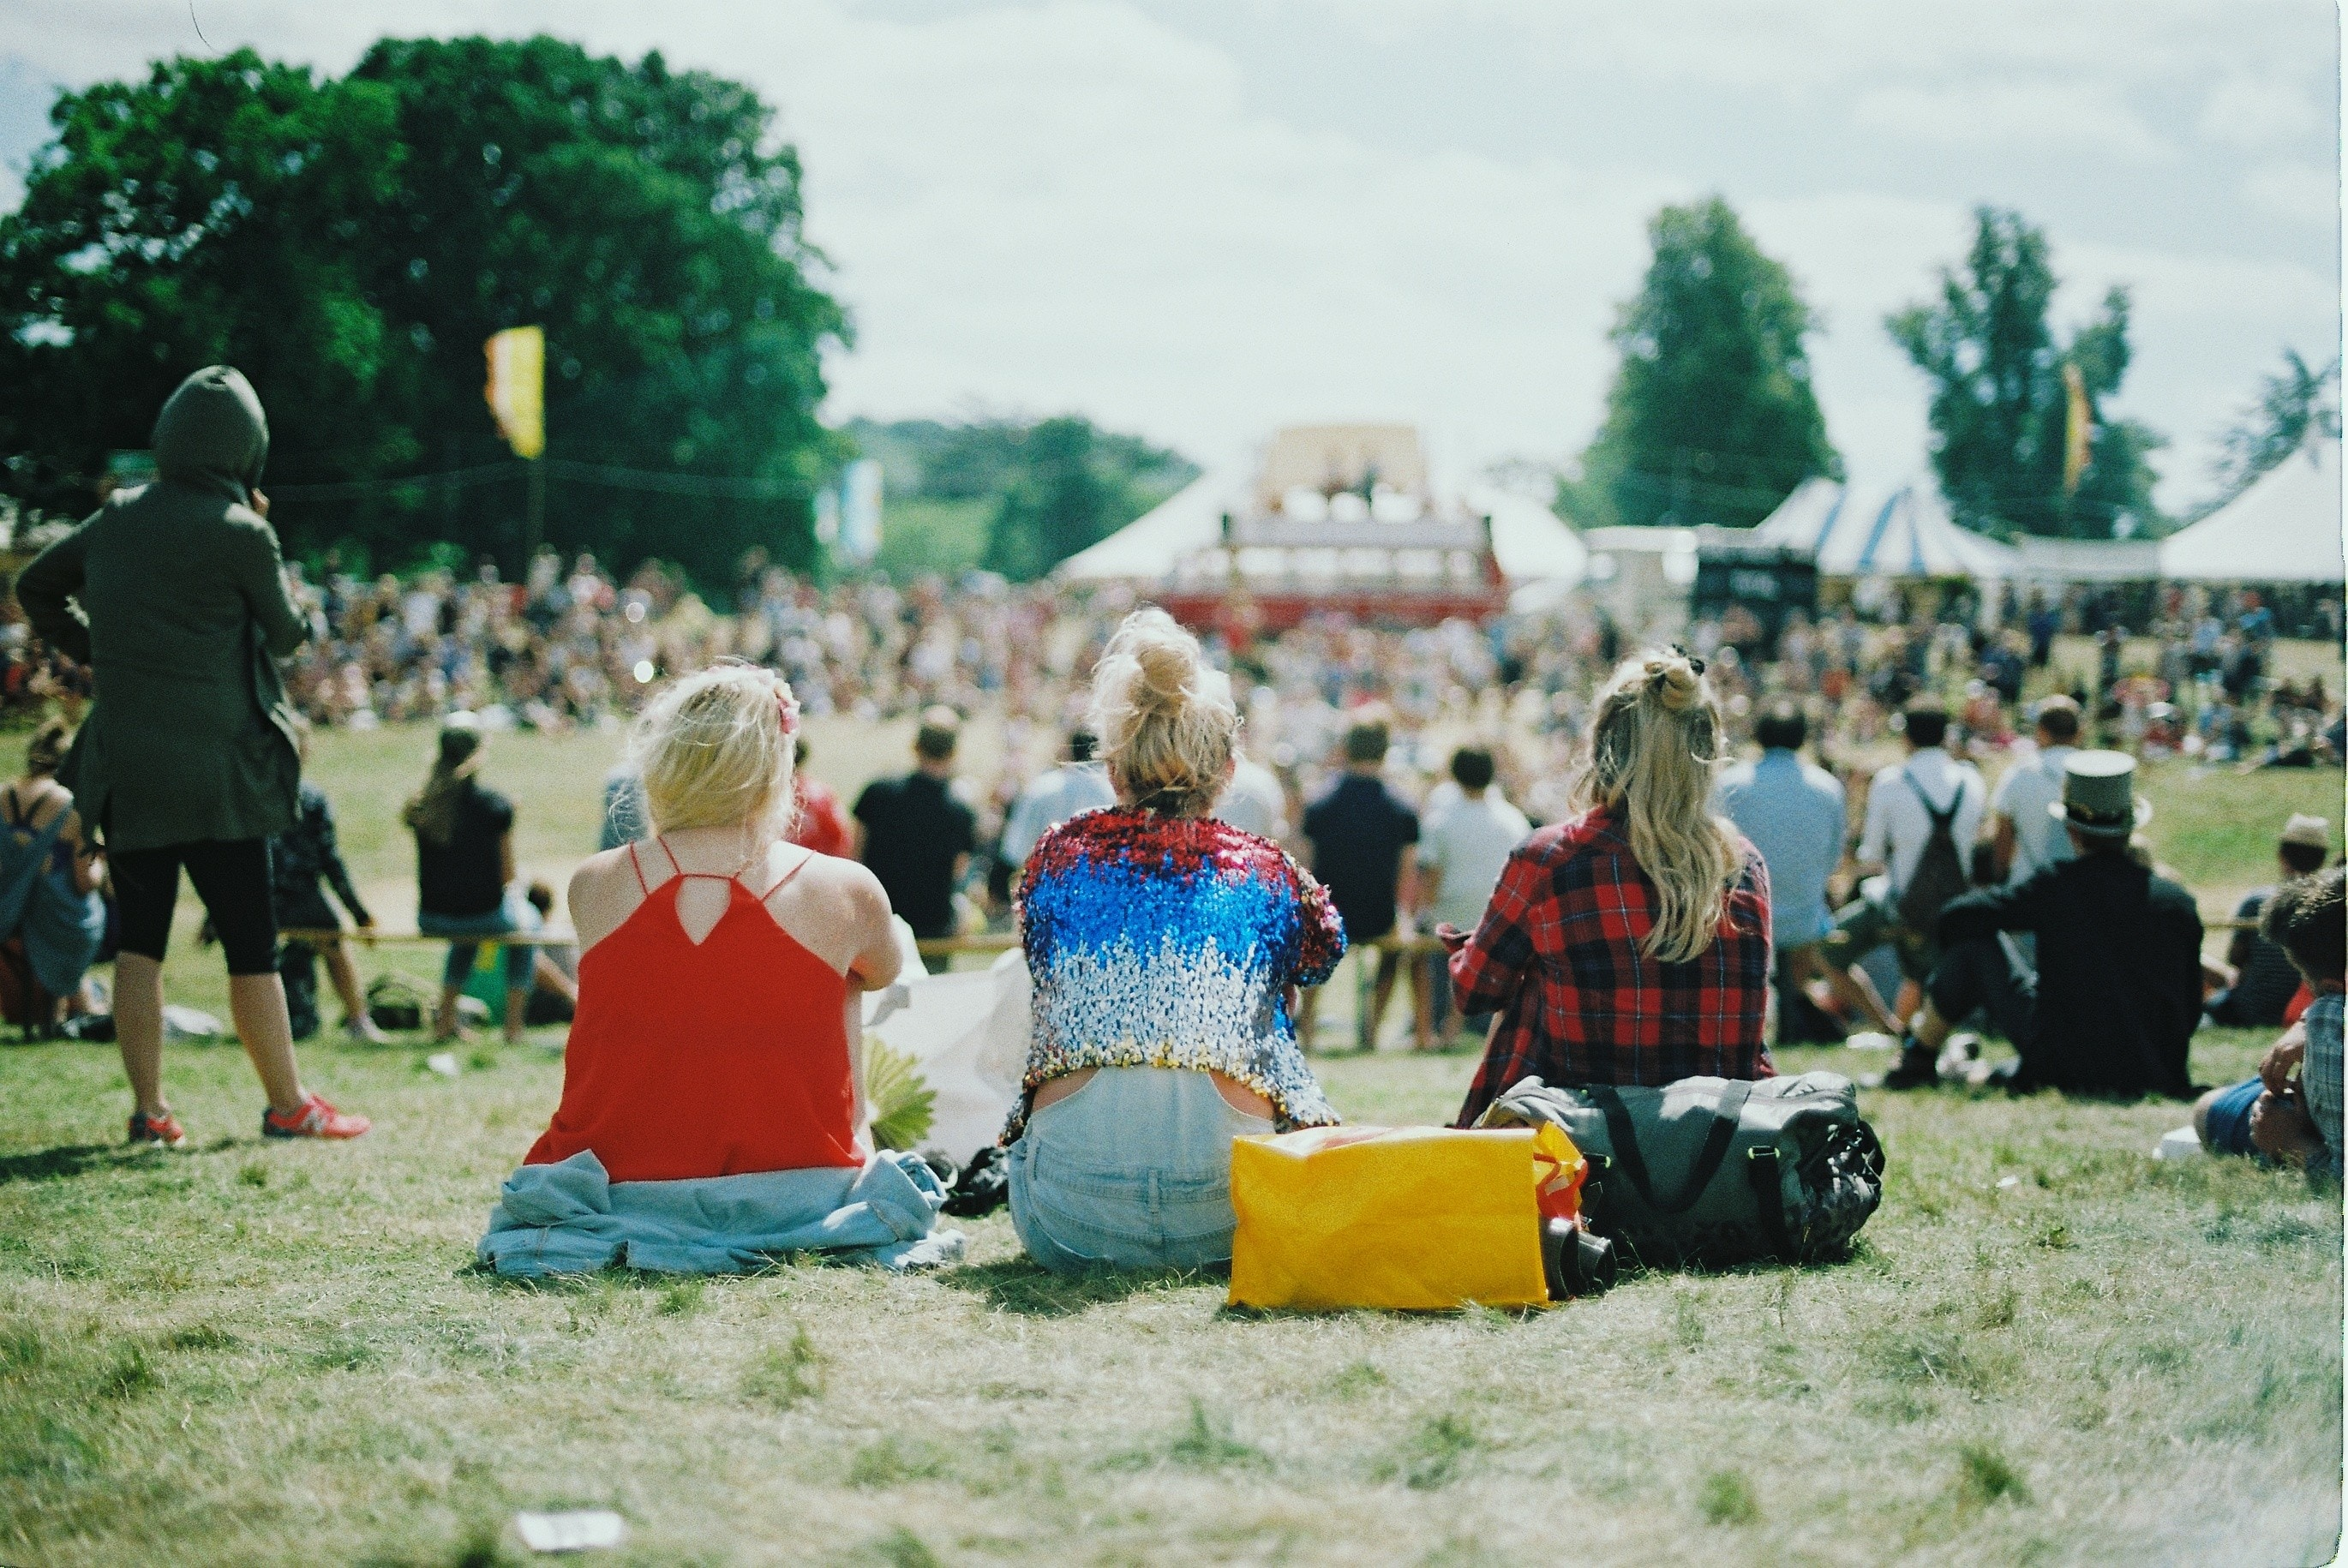 The Simple Guide to a Plastic Free Festival